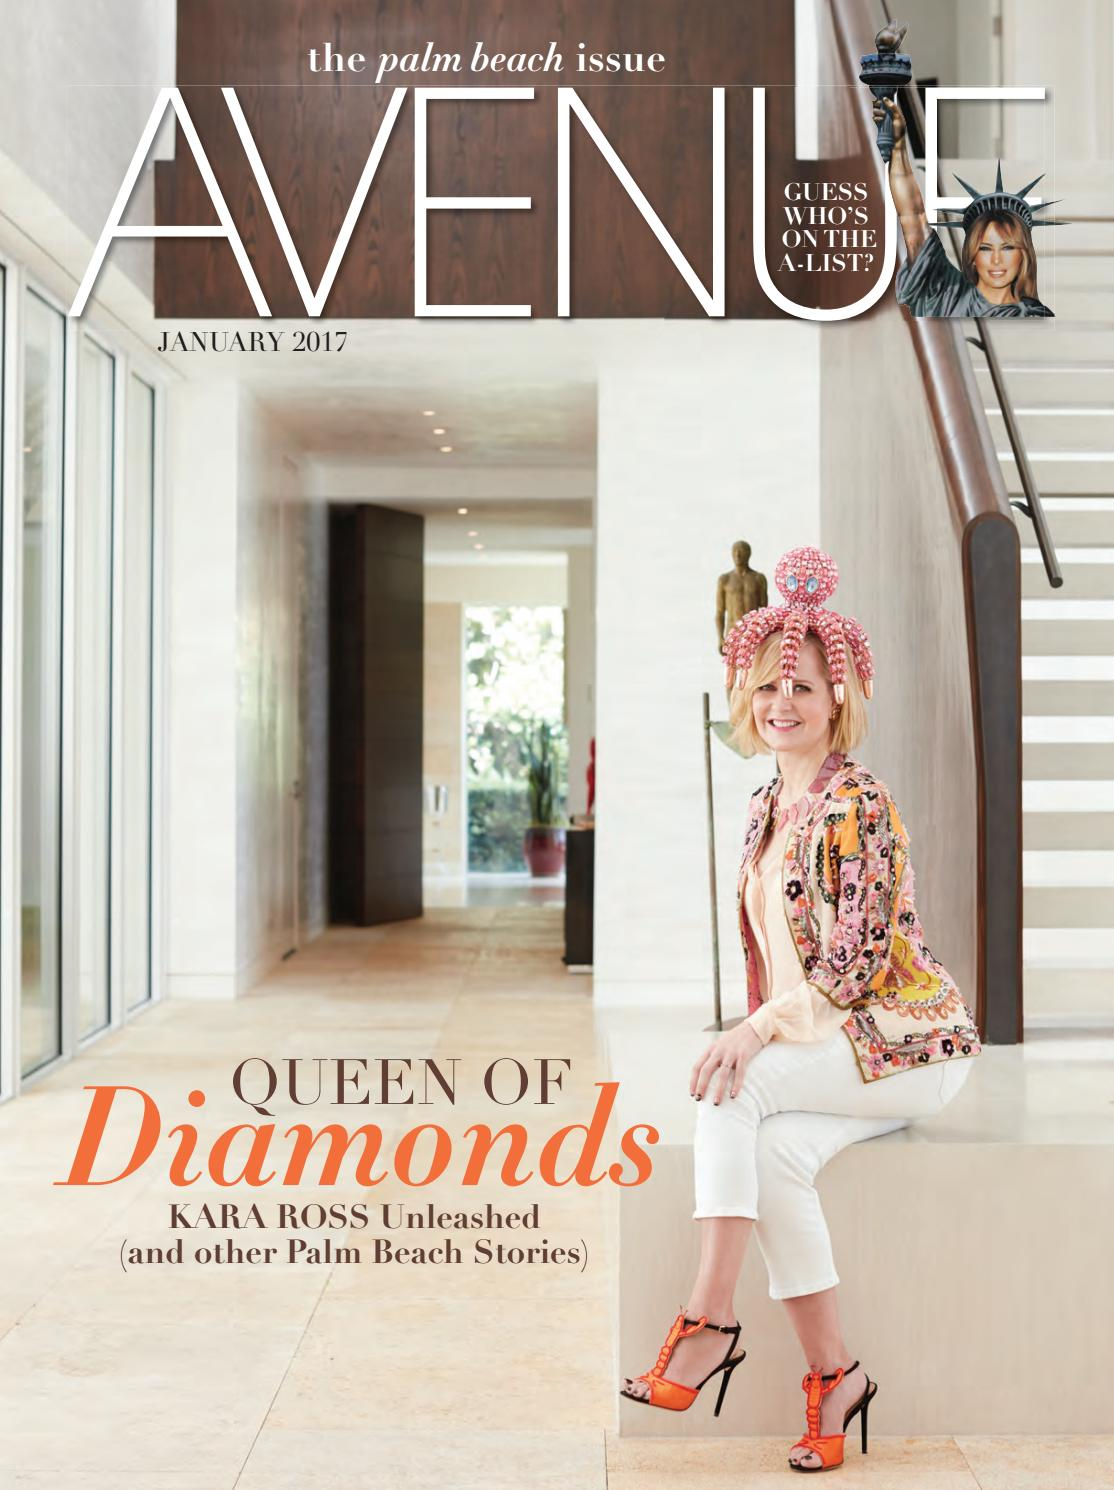 2e1aeeeec7 AVENUE January 2017 by AVENUE Magazine - issuu